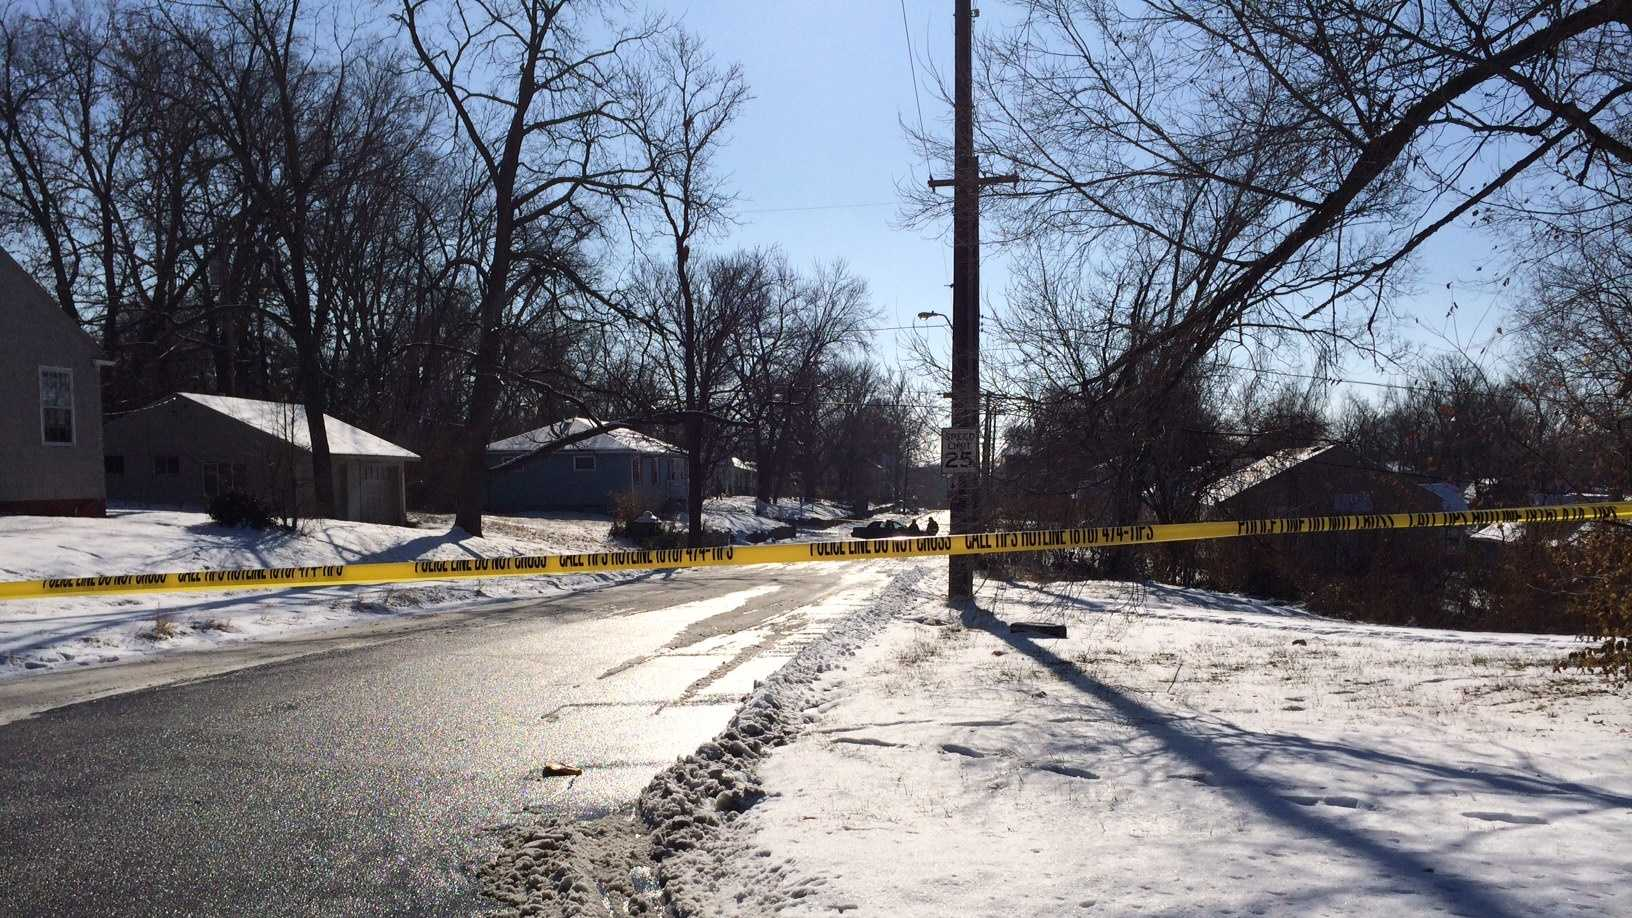 One person shot near 67th and Myrtle